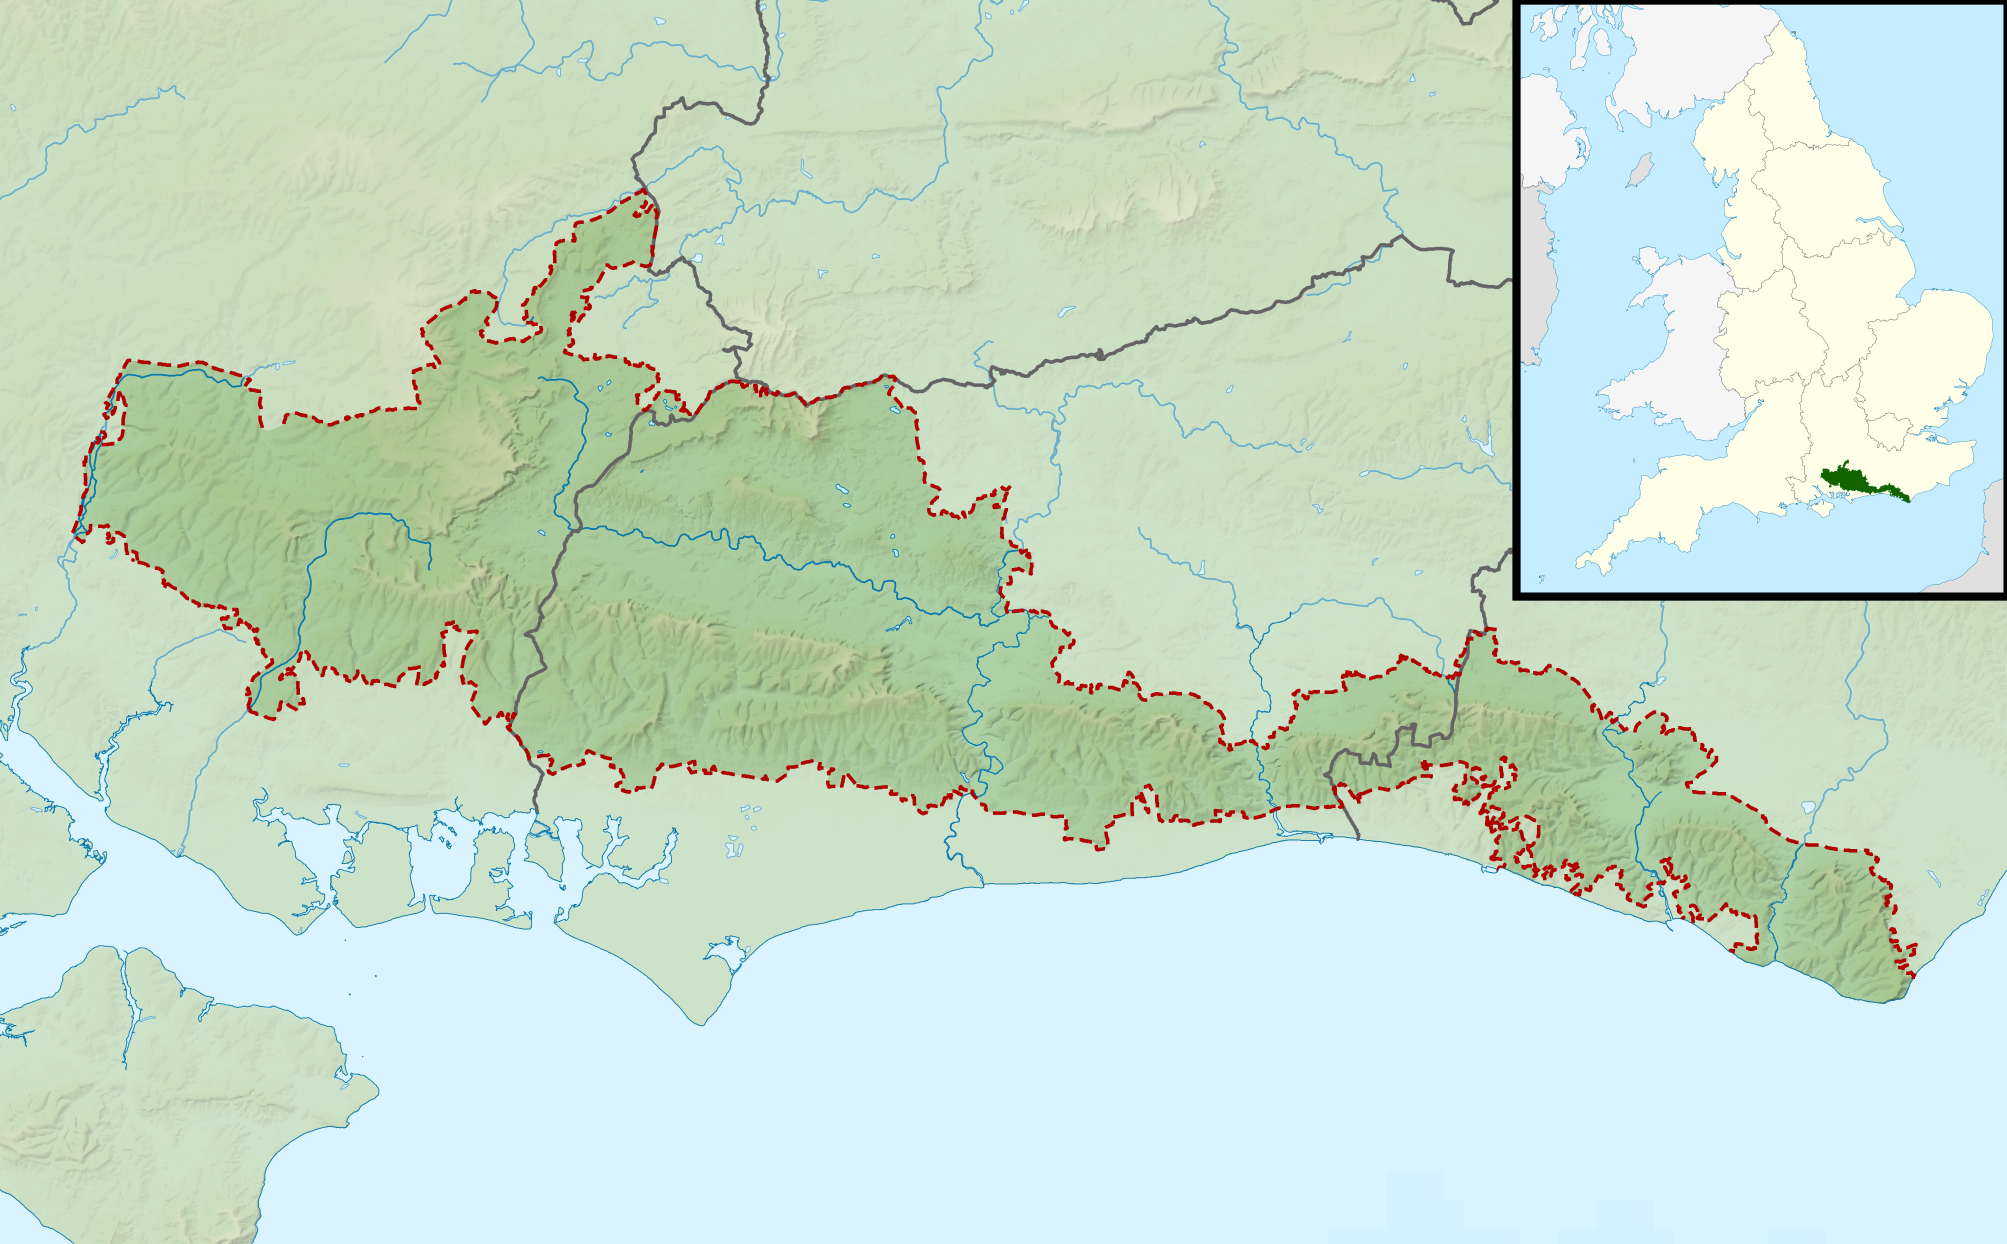 The South Downs were designated a National Park on 31 March 2010